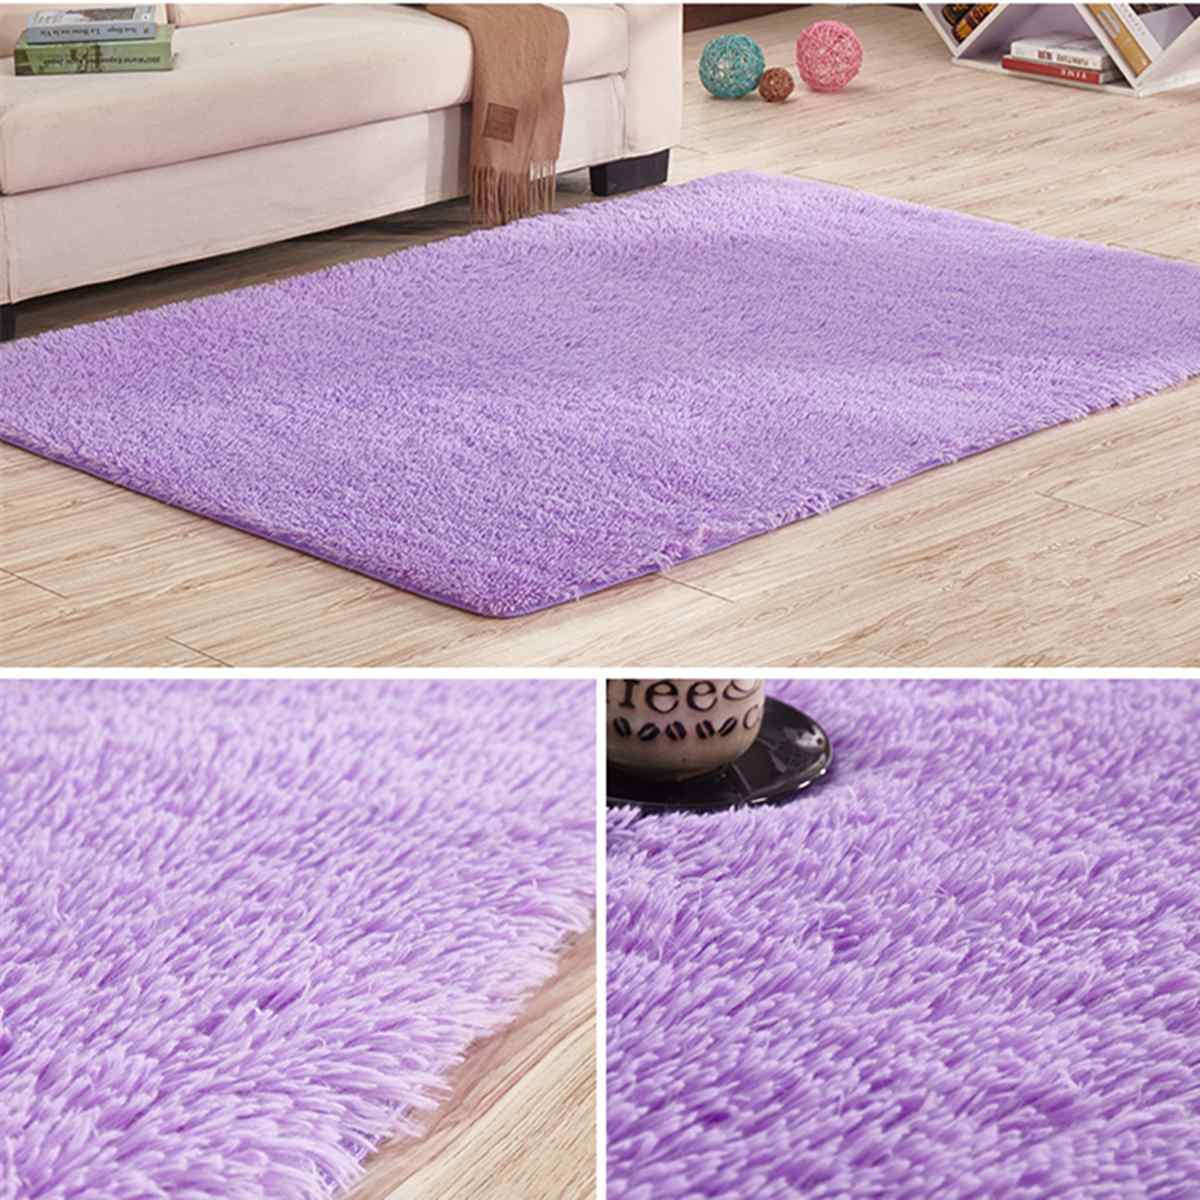 Purple Fluffy Rugs Anti-Skid Shaggy Area Rug Non-slip Carpet Floor Mat Home Living Room Soft Child Bedroom Climbing Mat 2 Size